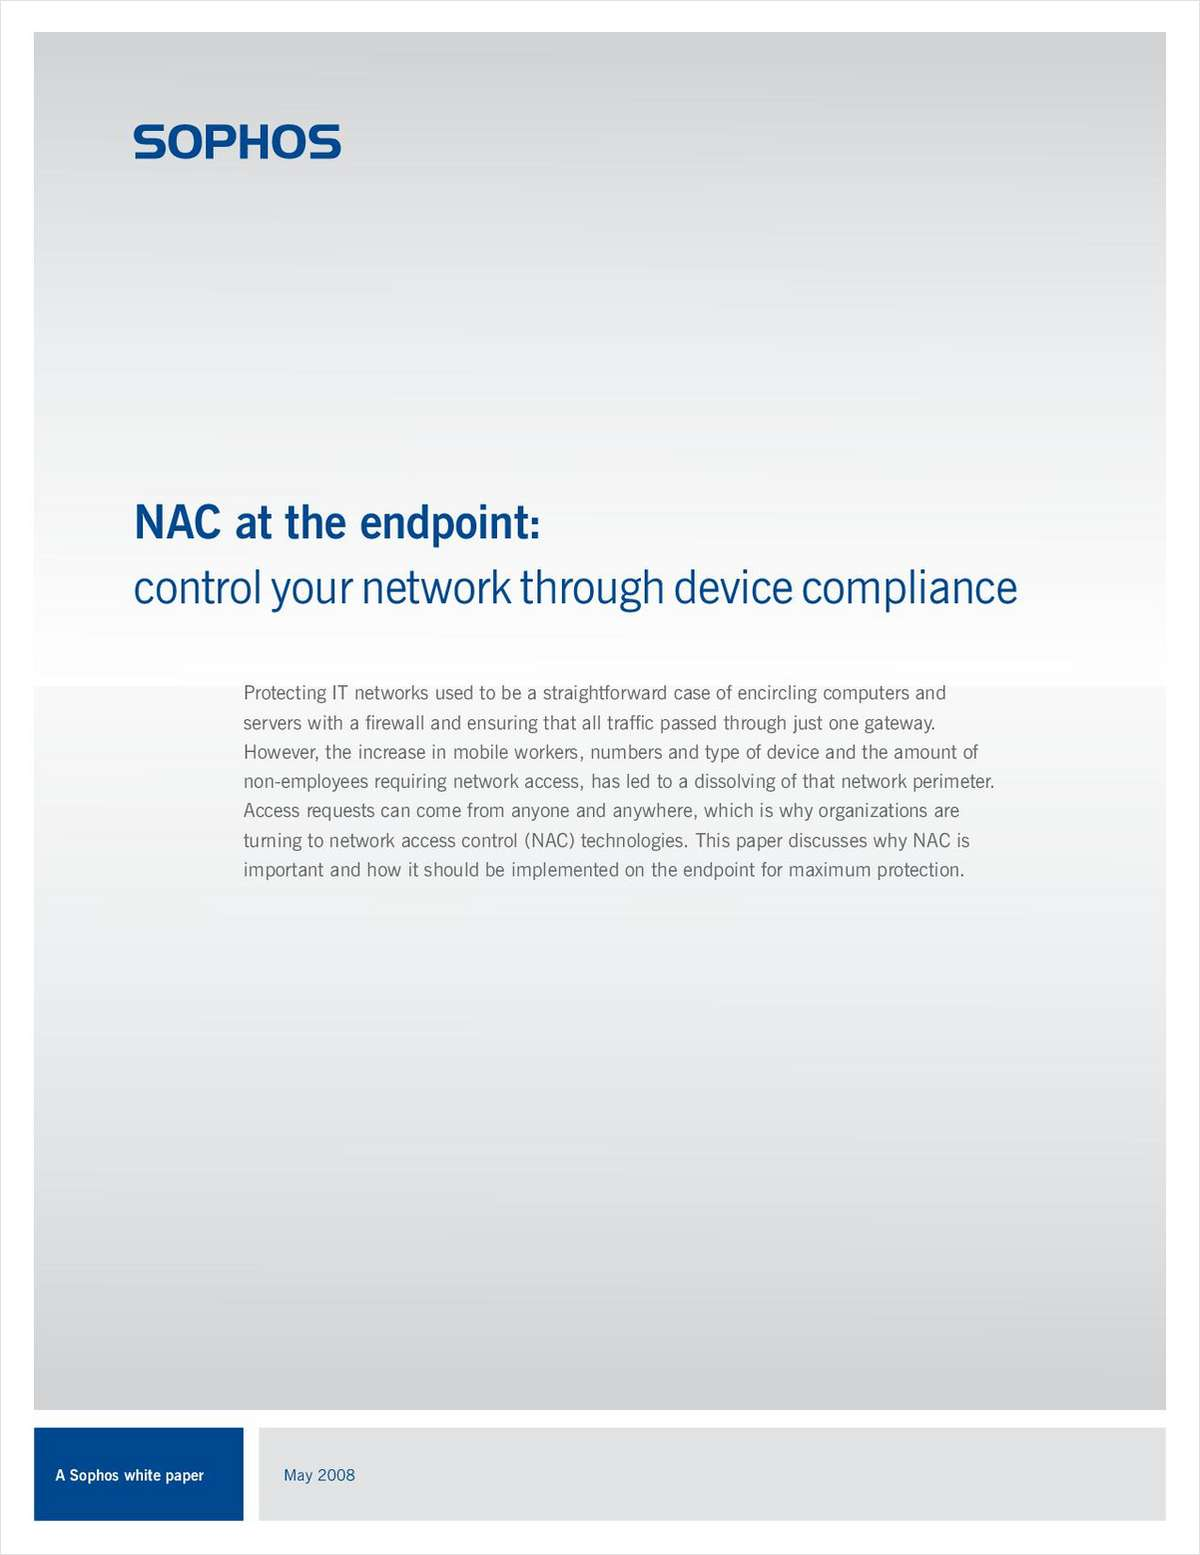 NAC at the Endpoint: Control your Network Through Device Compliance